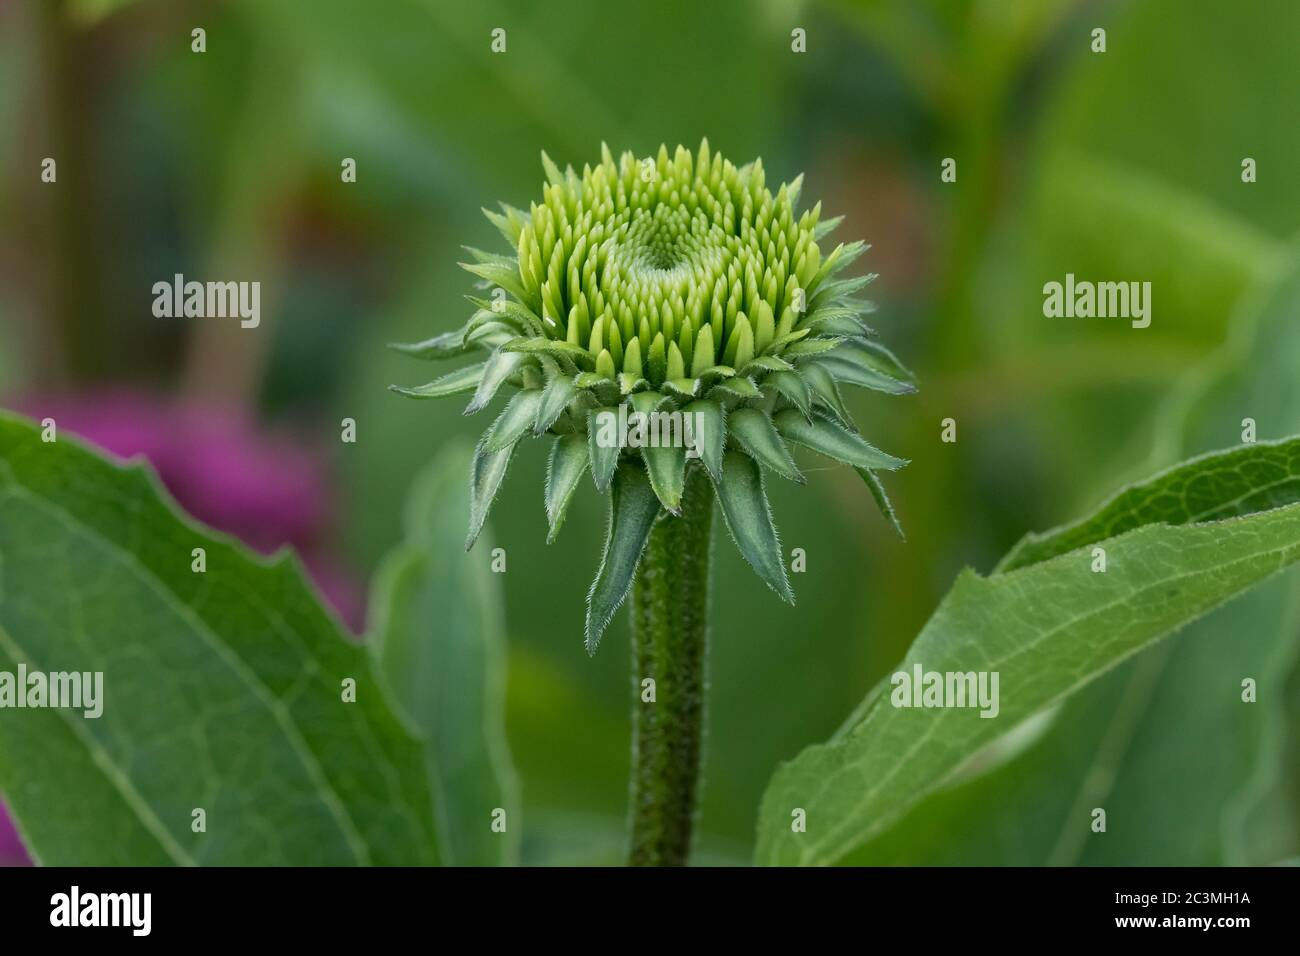 close up of a coneflower blossom in growing in the lily garden Stock Photo